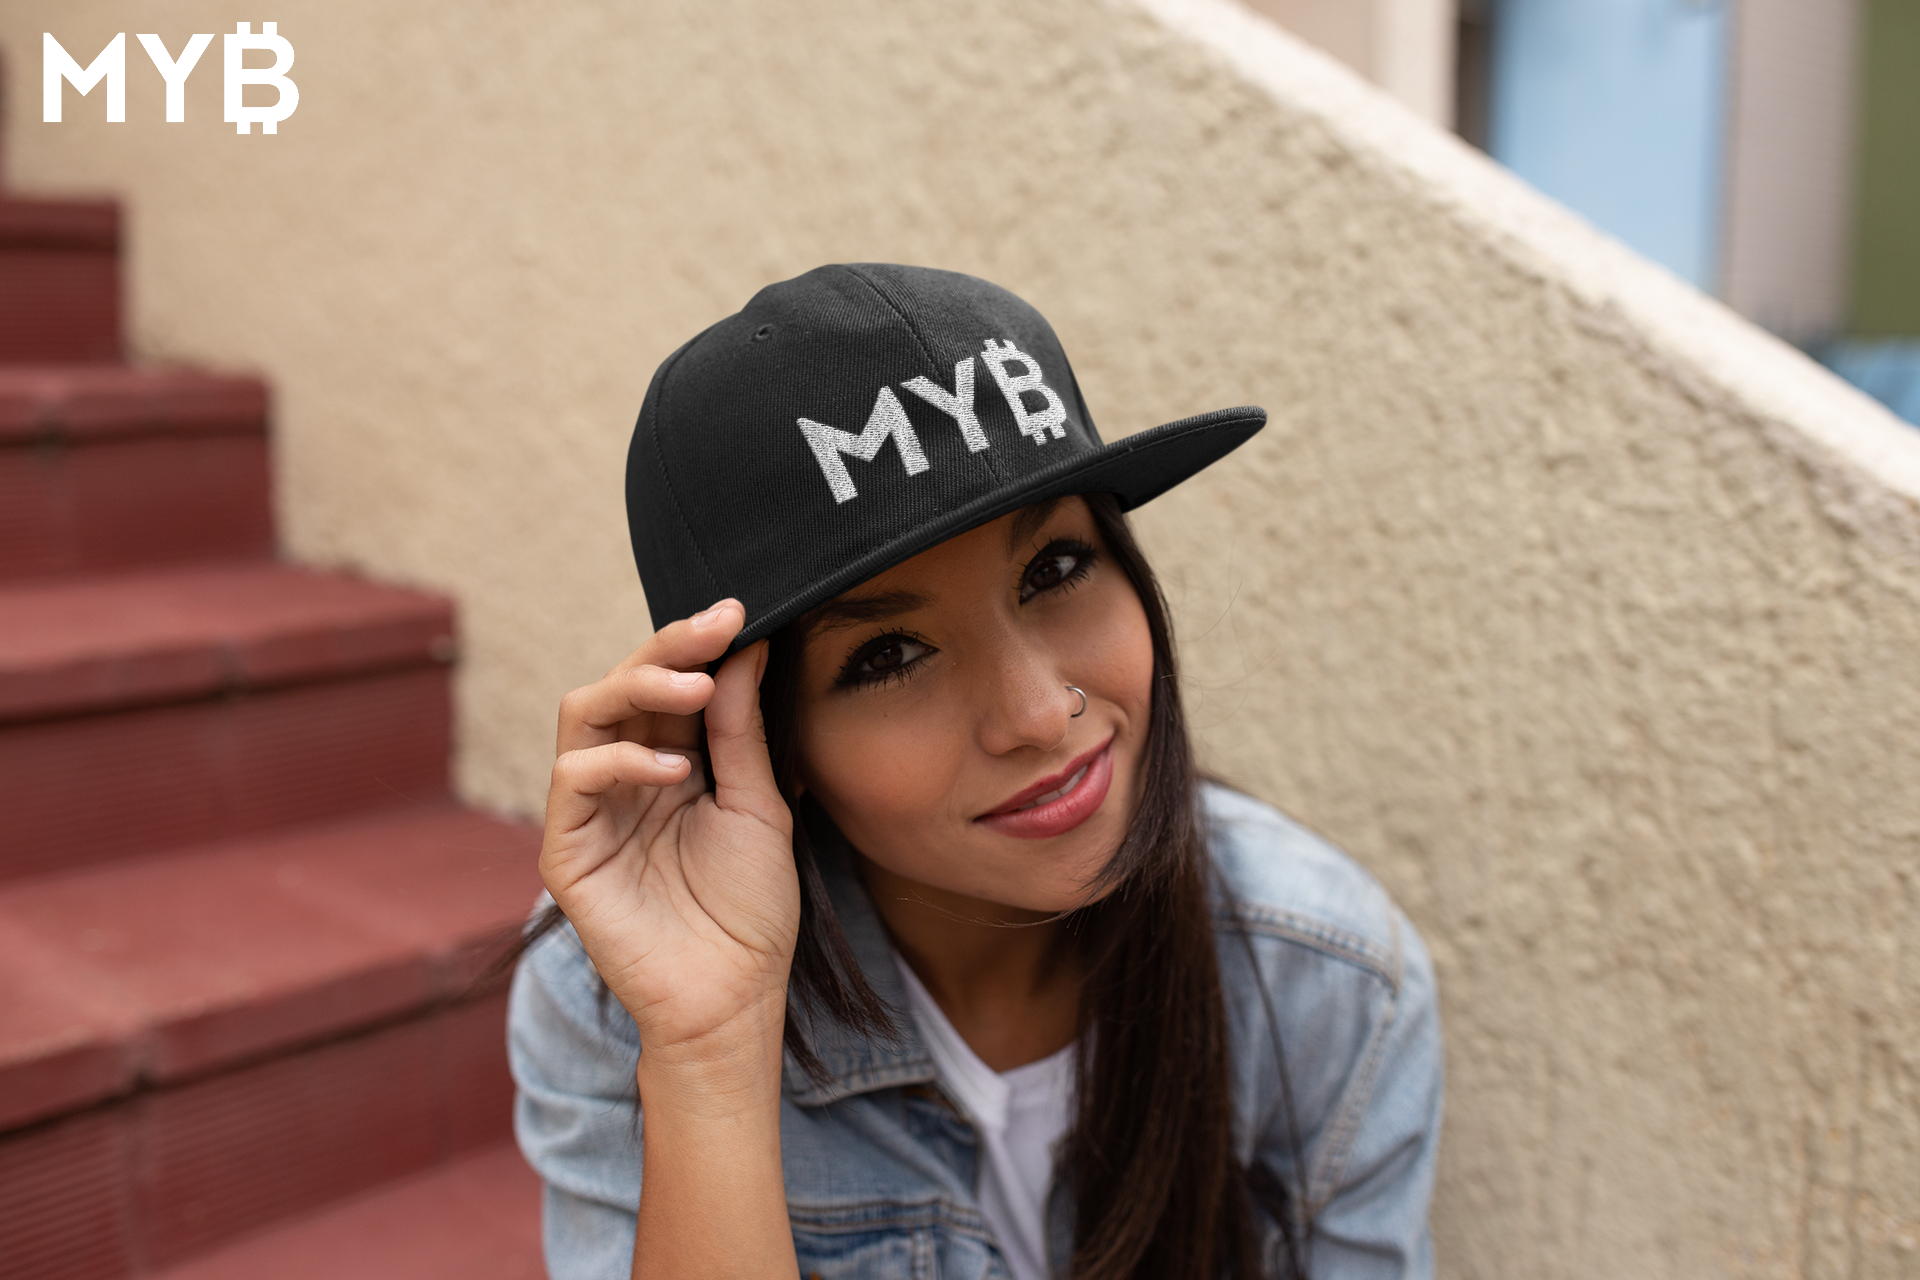 MYB merch shop